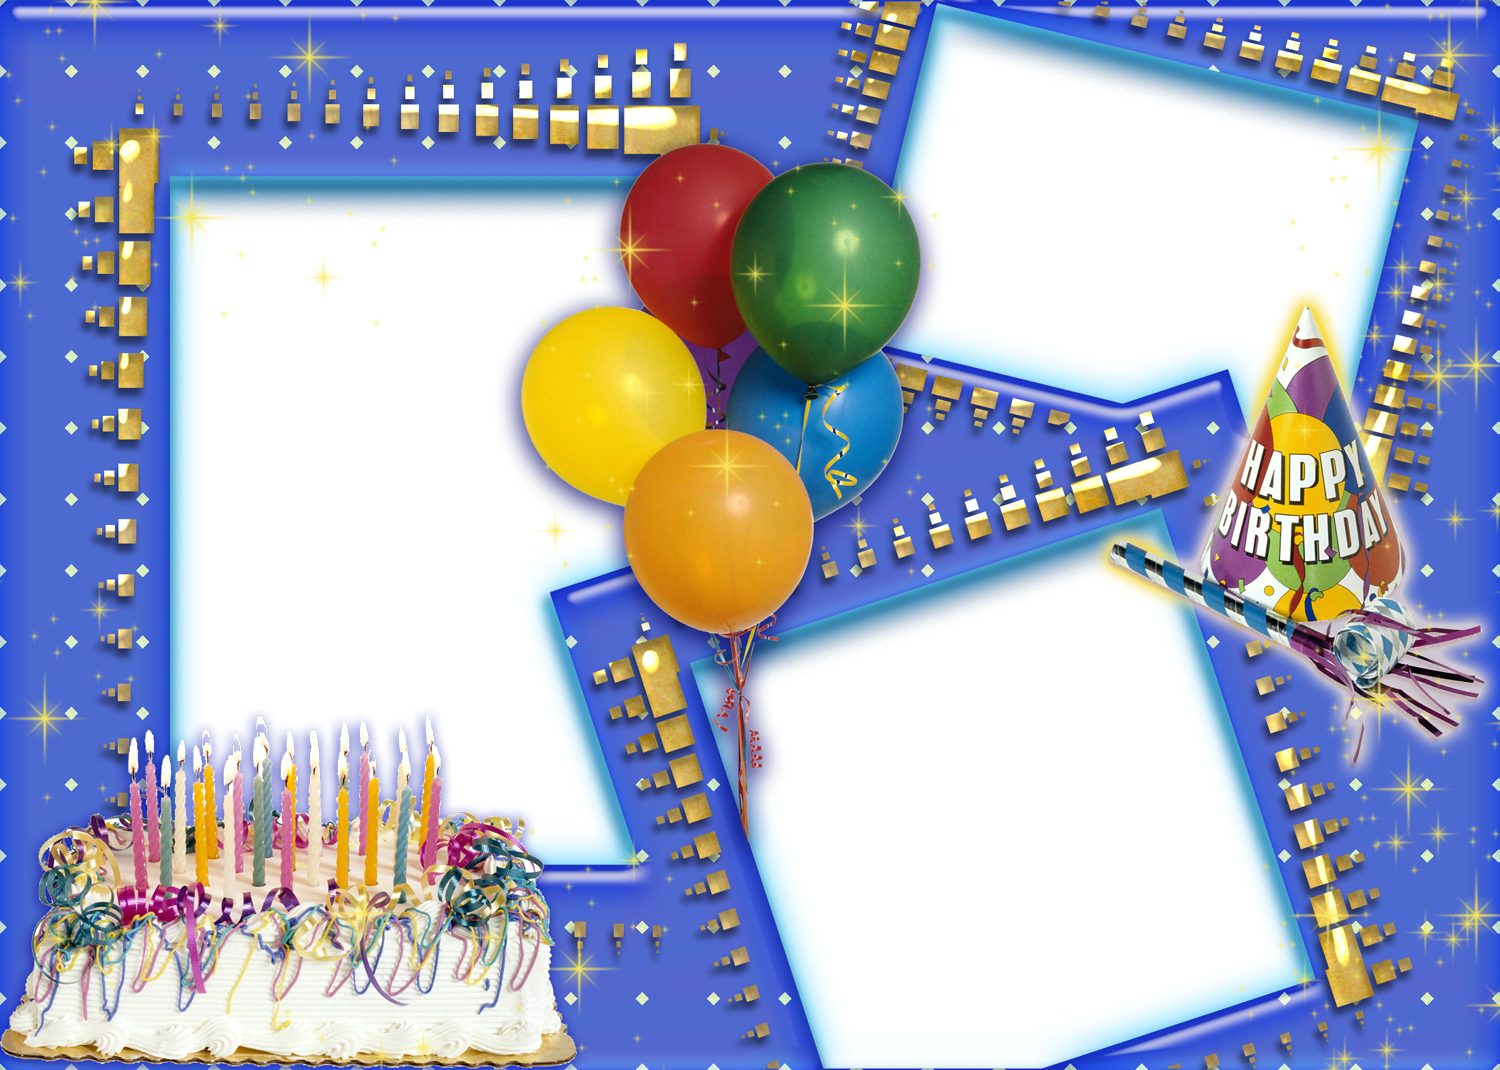 Happy Birthday Frames for Photoshop